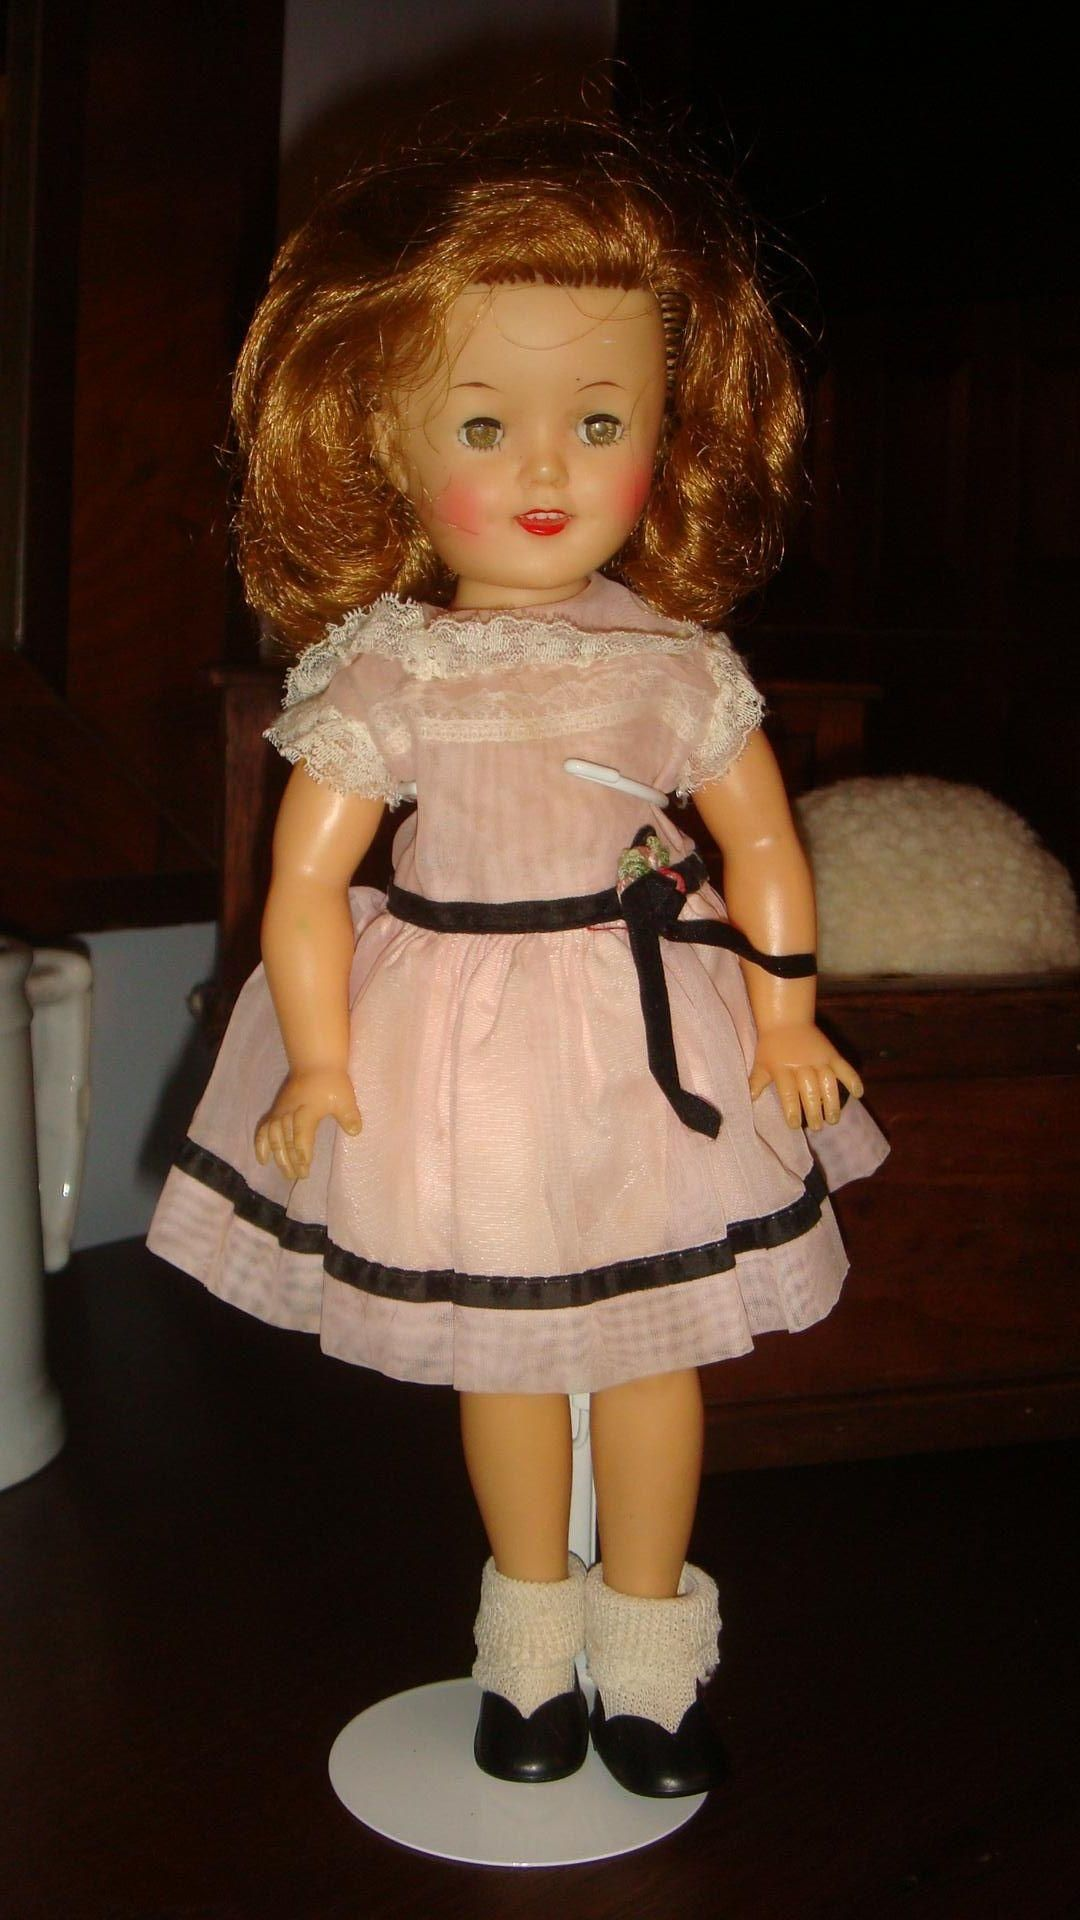 Ideal Vinyl 1950 S 12 Inch Shirley Temple Doll Rosy Cheeks Dimples Sleep Eyes Ky Estate Shirley Temple Dolls Dimples